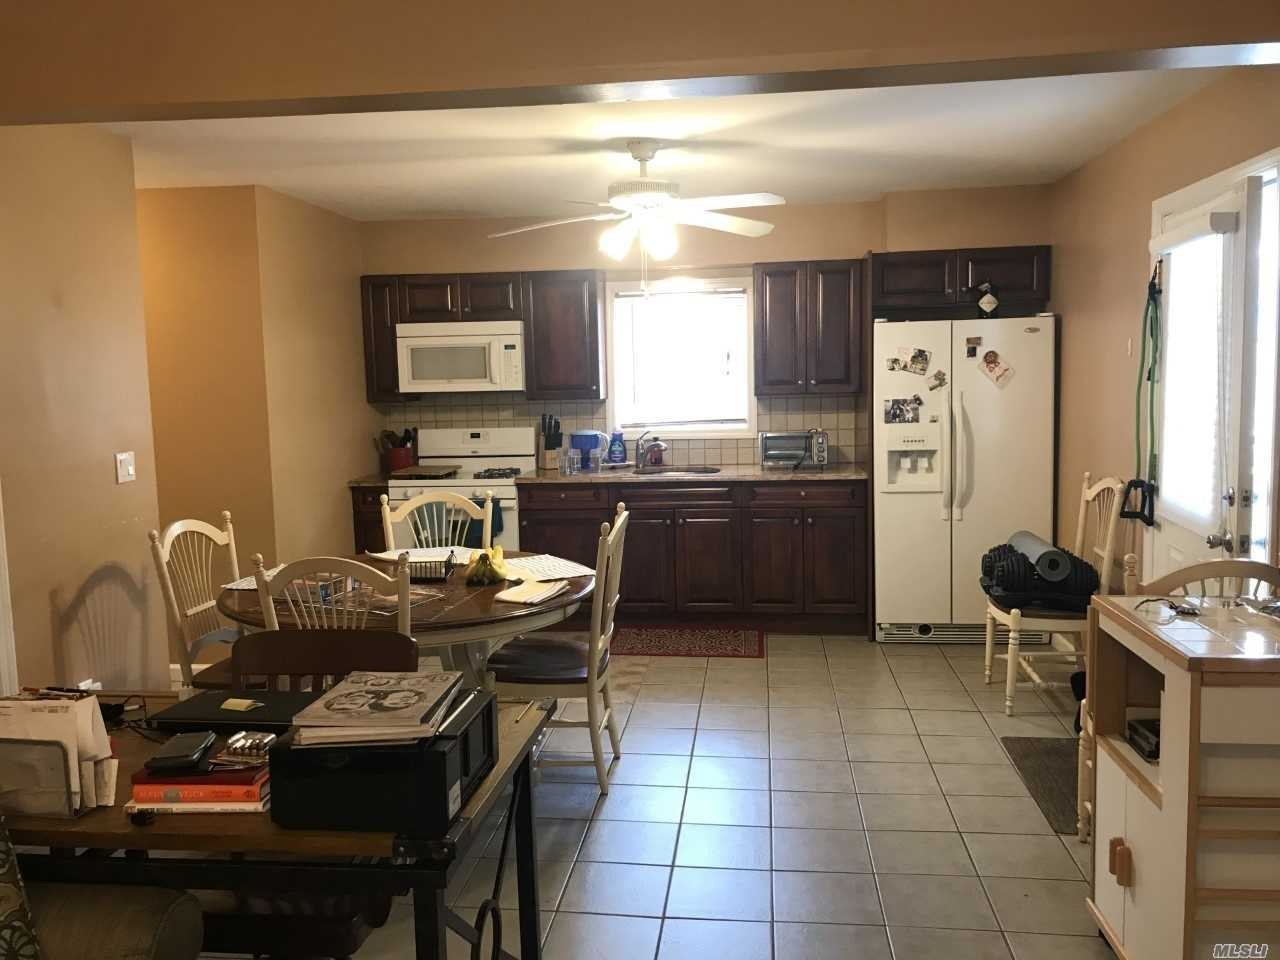 Spacious & clean first floor apartment. Open Floor plan with updated kitchen, dining area and living room. Large bedroom and Full bath with tub. Parking for one car only. Includes heat and water. Electric is seperate. No Pets, No smoking! Landlord occupied property.